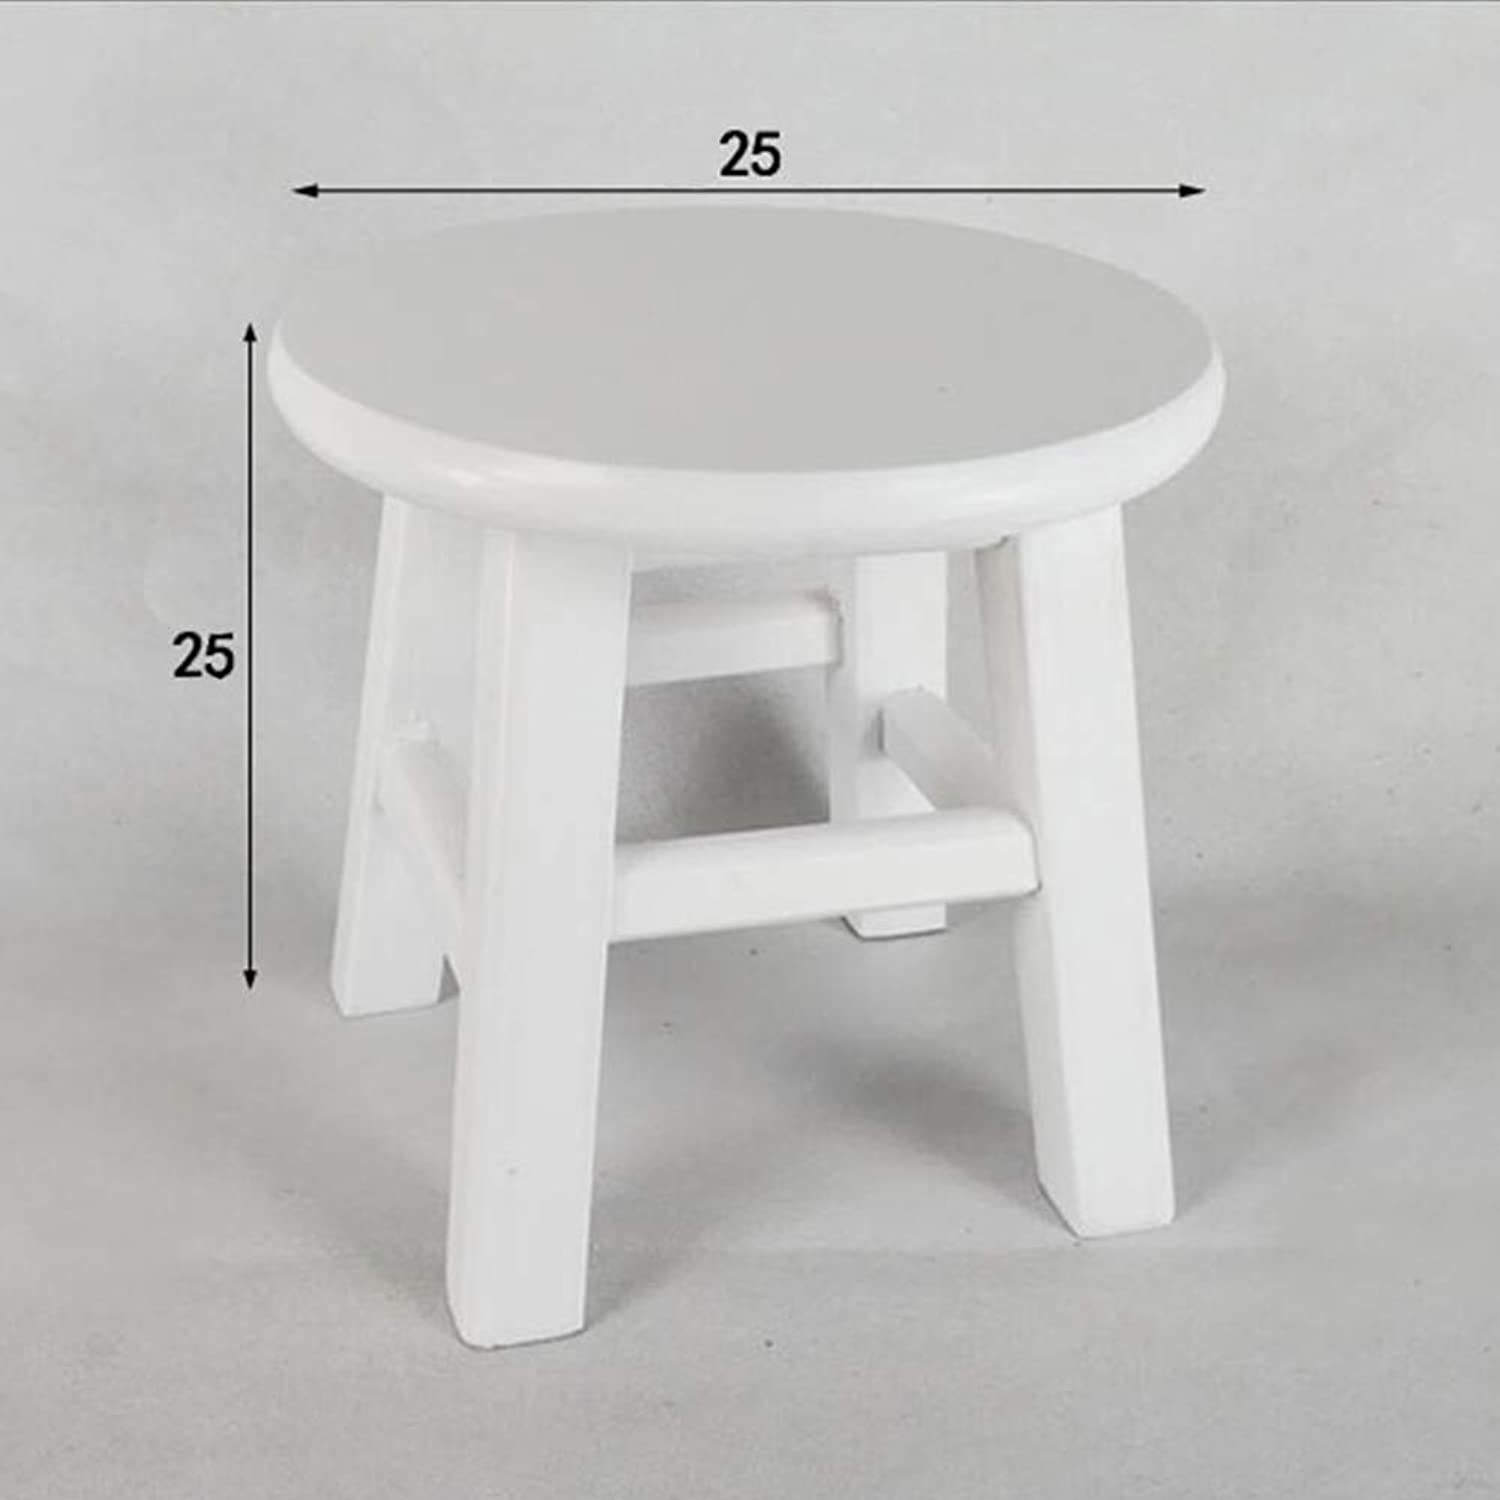 Stools Footstool Work Stool Step Stool Solid Wood Bold Reinforce Small Round Bench Household Tea Sit Change shoes Short CONGMING (color   White)